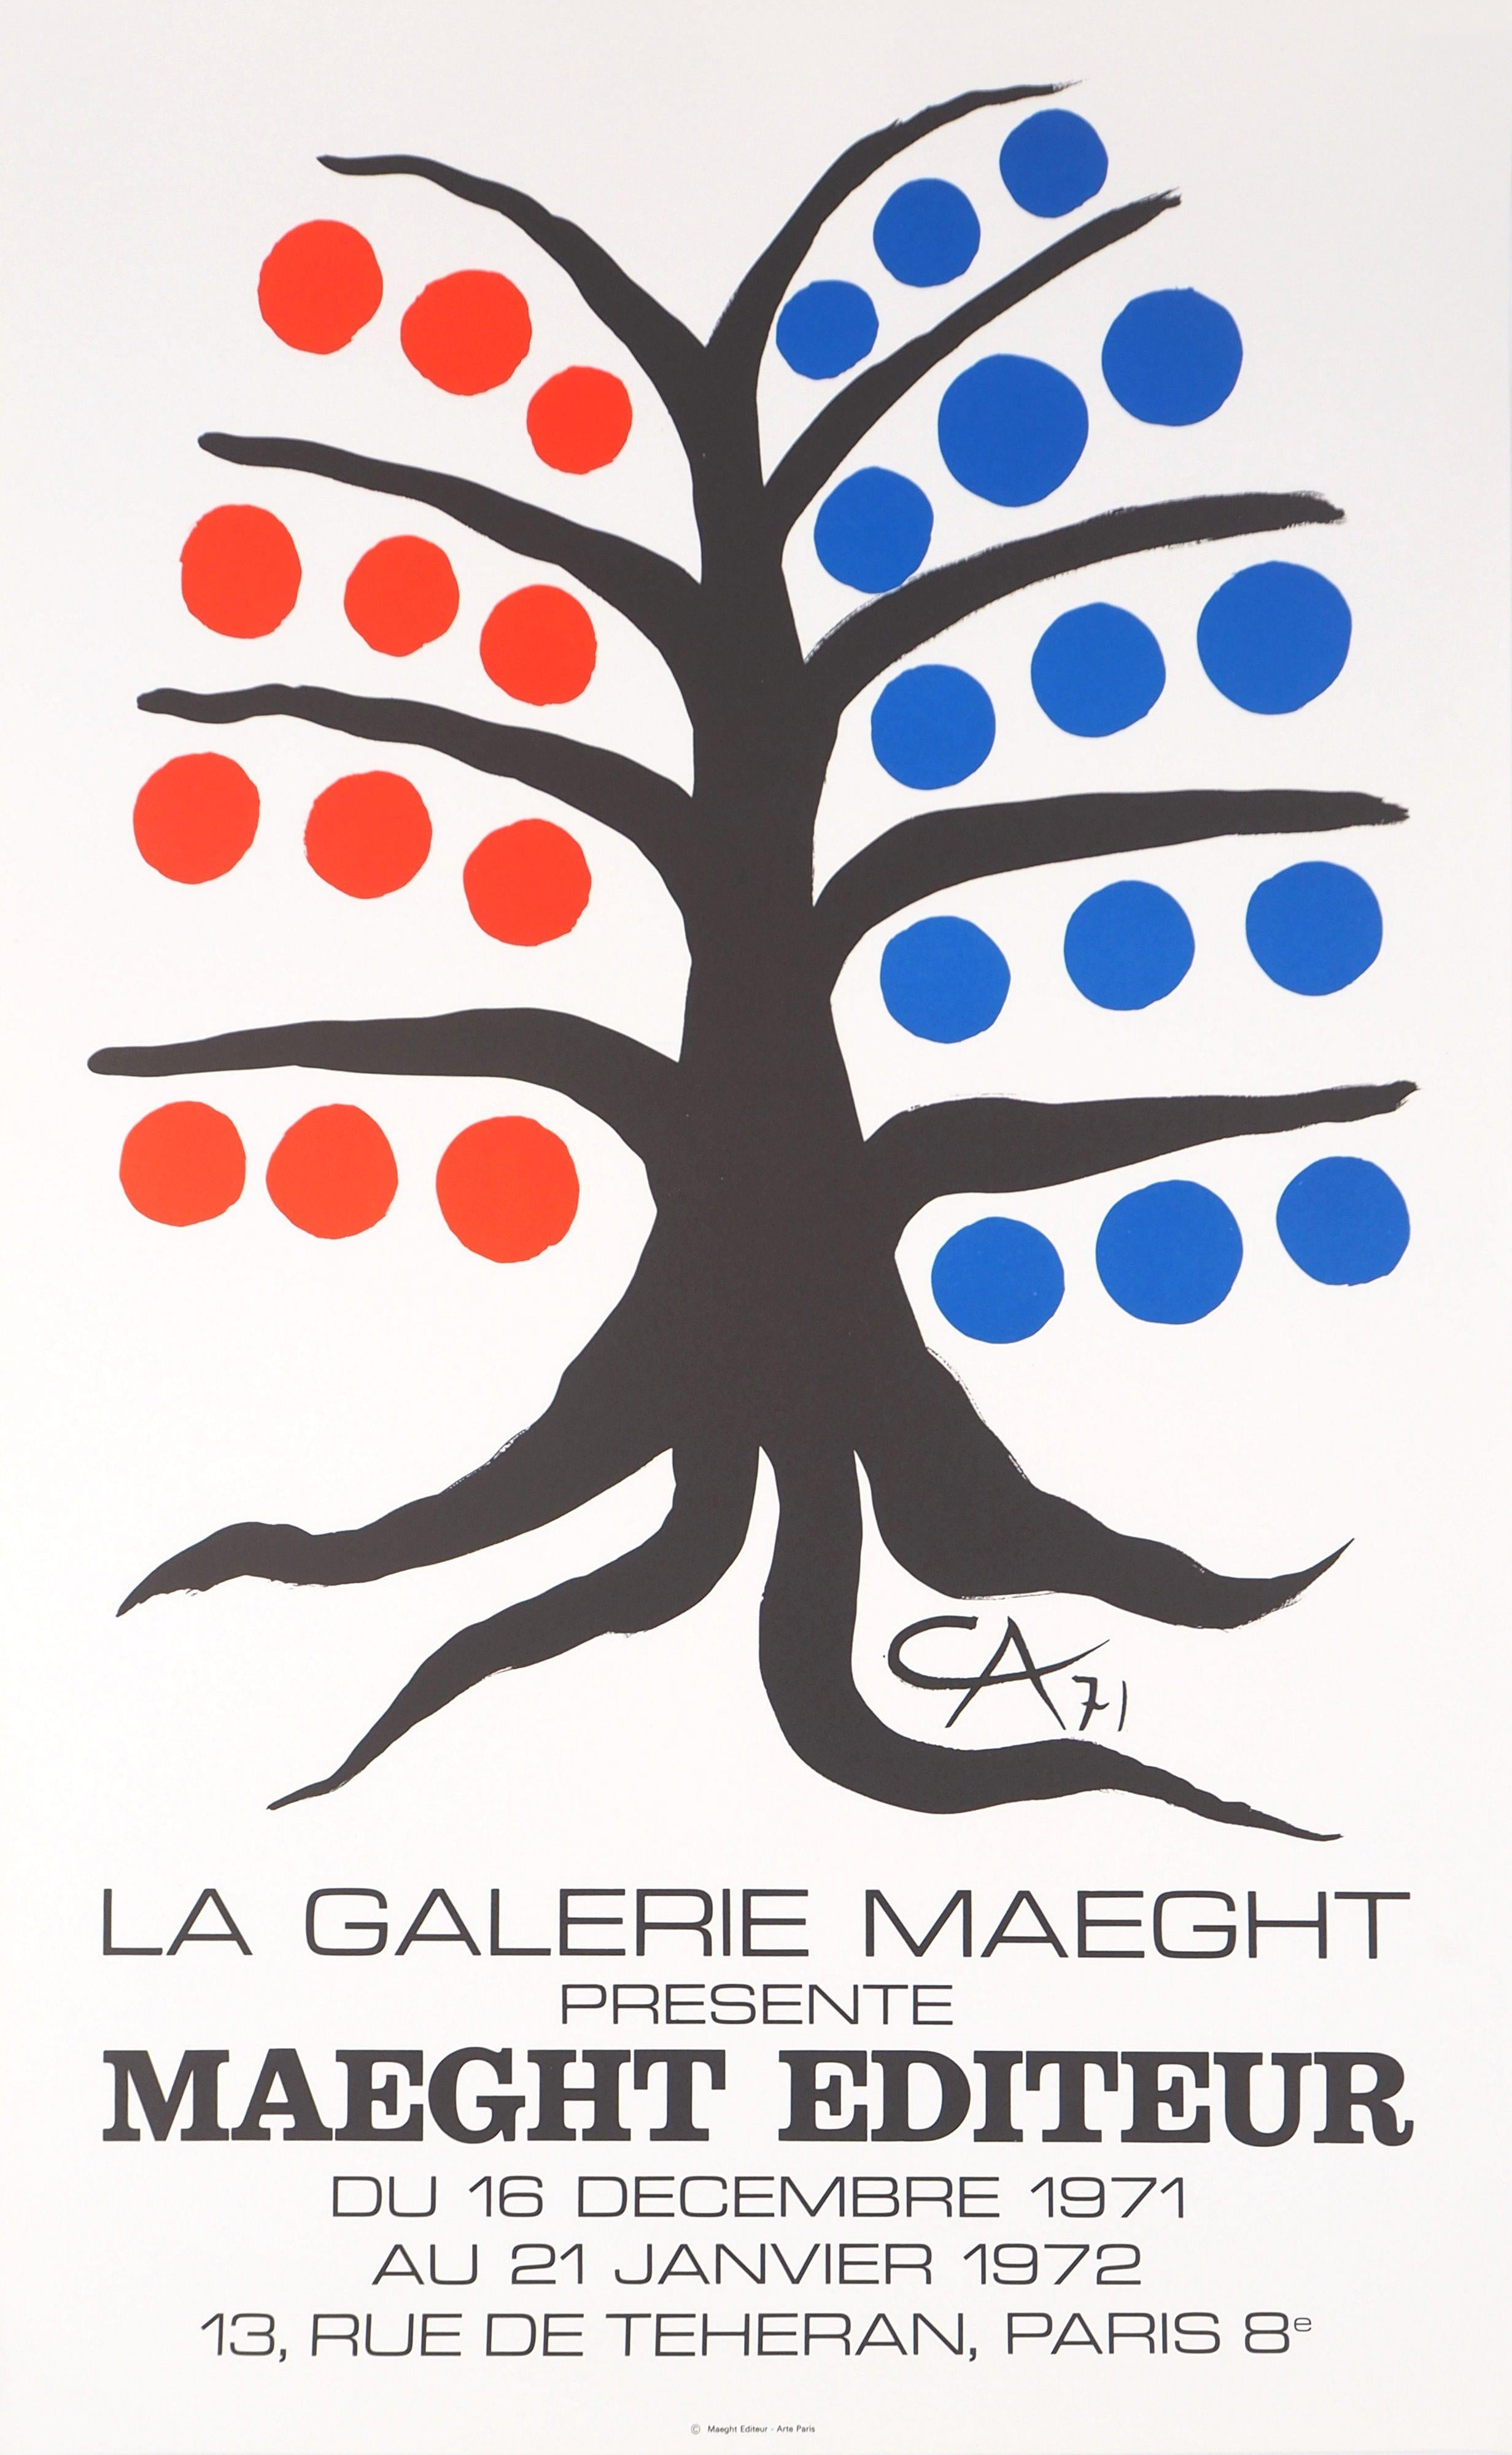 Black tree with red and blue fruits - Lithograph poster - Maeght 1971